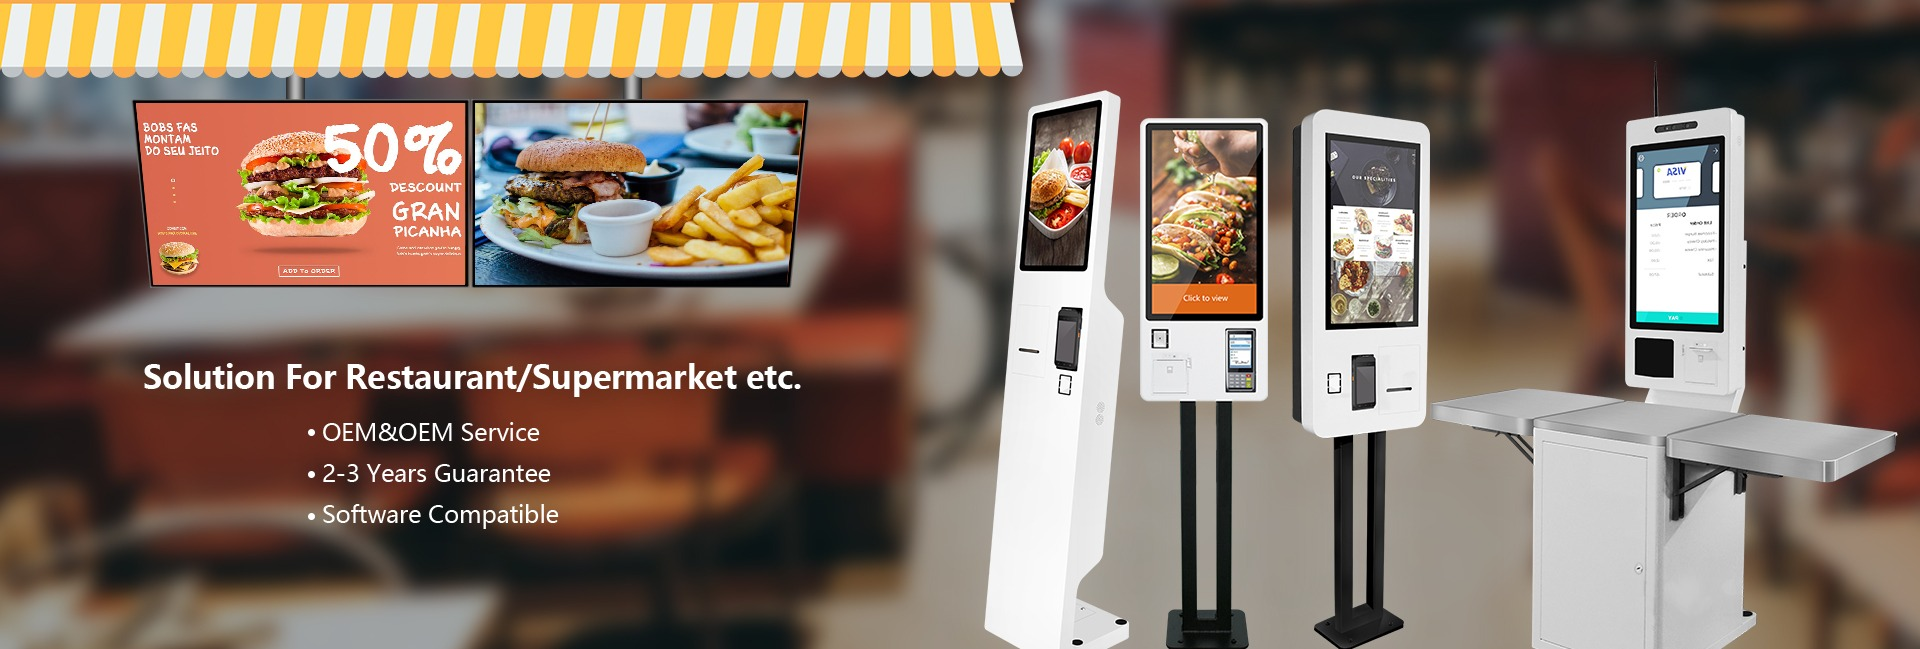 takeaway epos london Digital Screens and self order kiosk